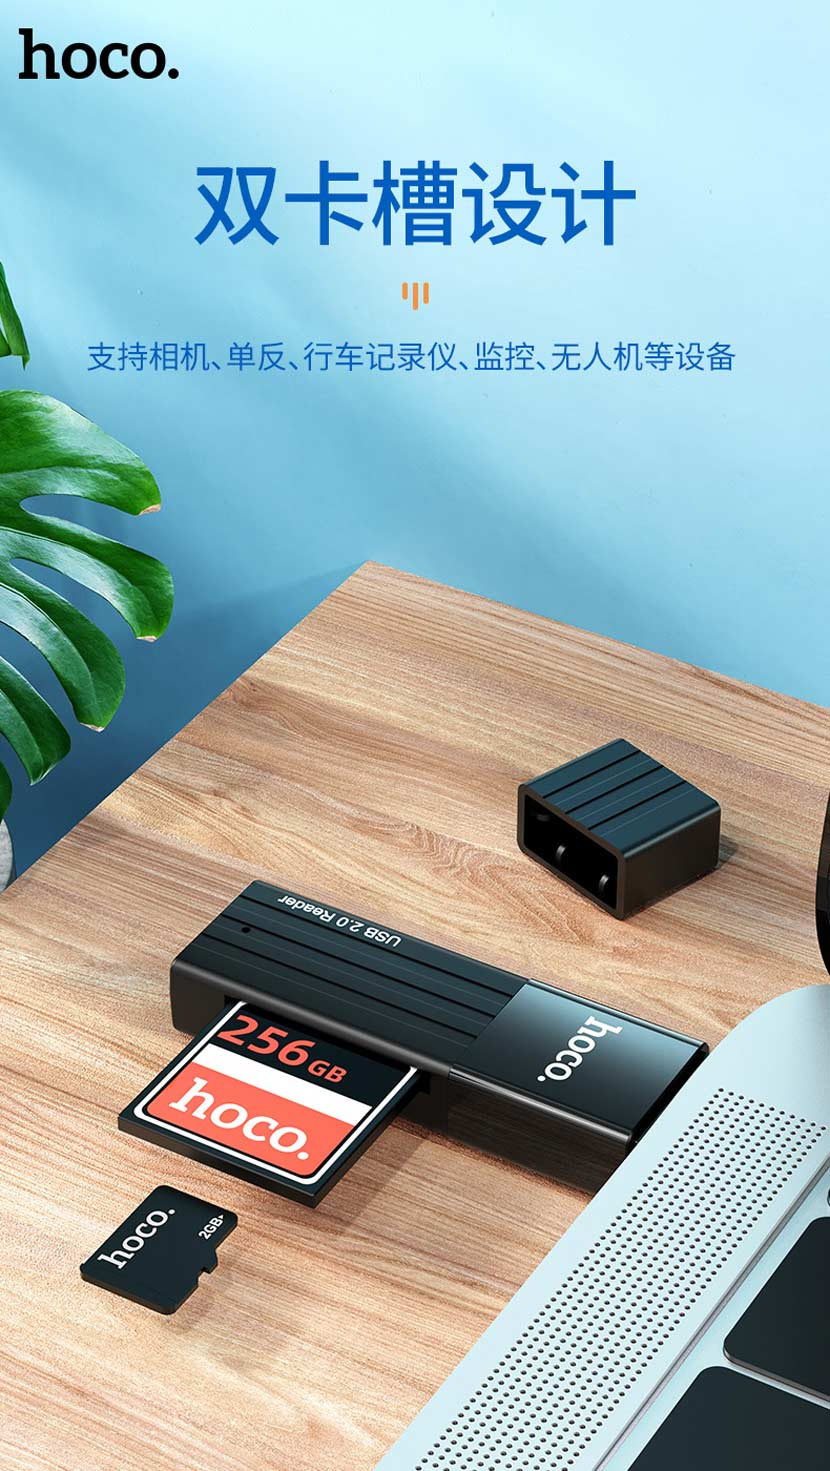 hoco news hb20 mindful 2in1 card reader design cn